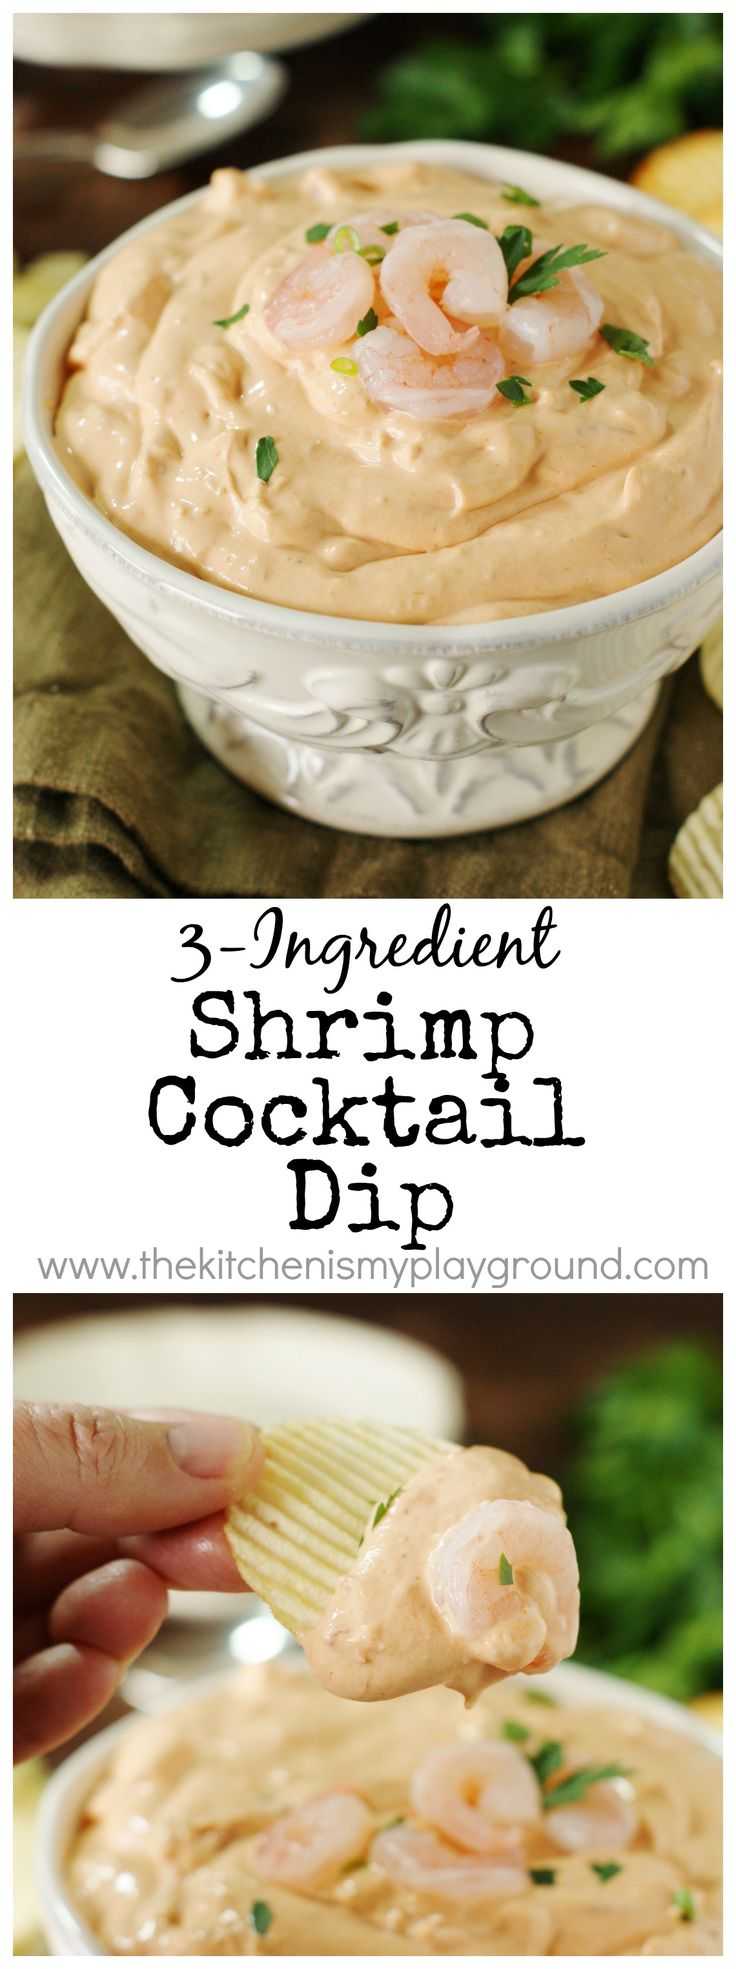 3-Ingredient Shrimp Cocktail Dip ~ a simple & easy dip loaded with shrimp in every bite!  A party and game day favorite.   www.thekitchenismyplayground.com